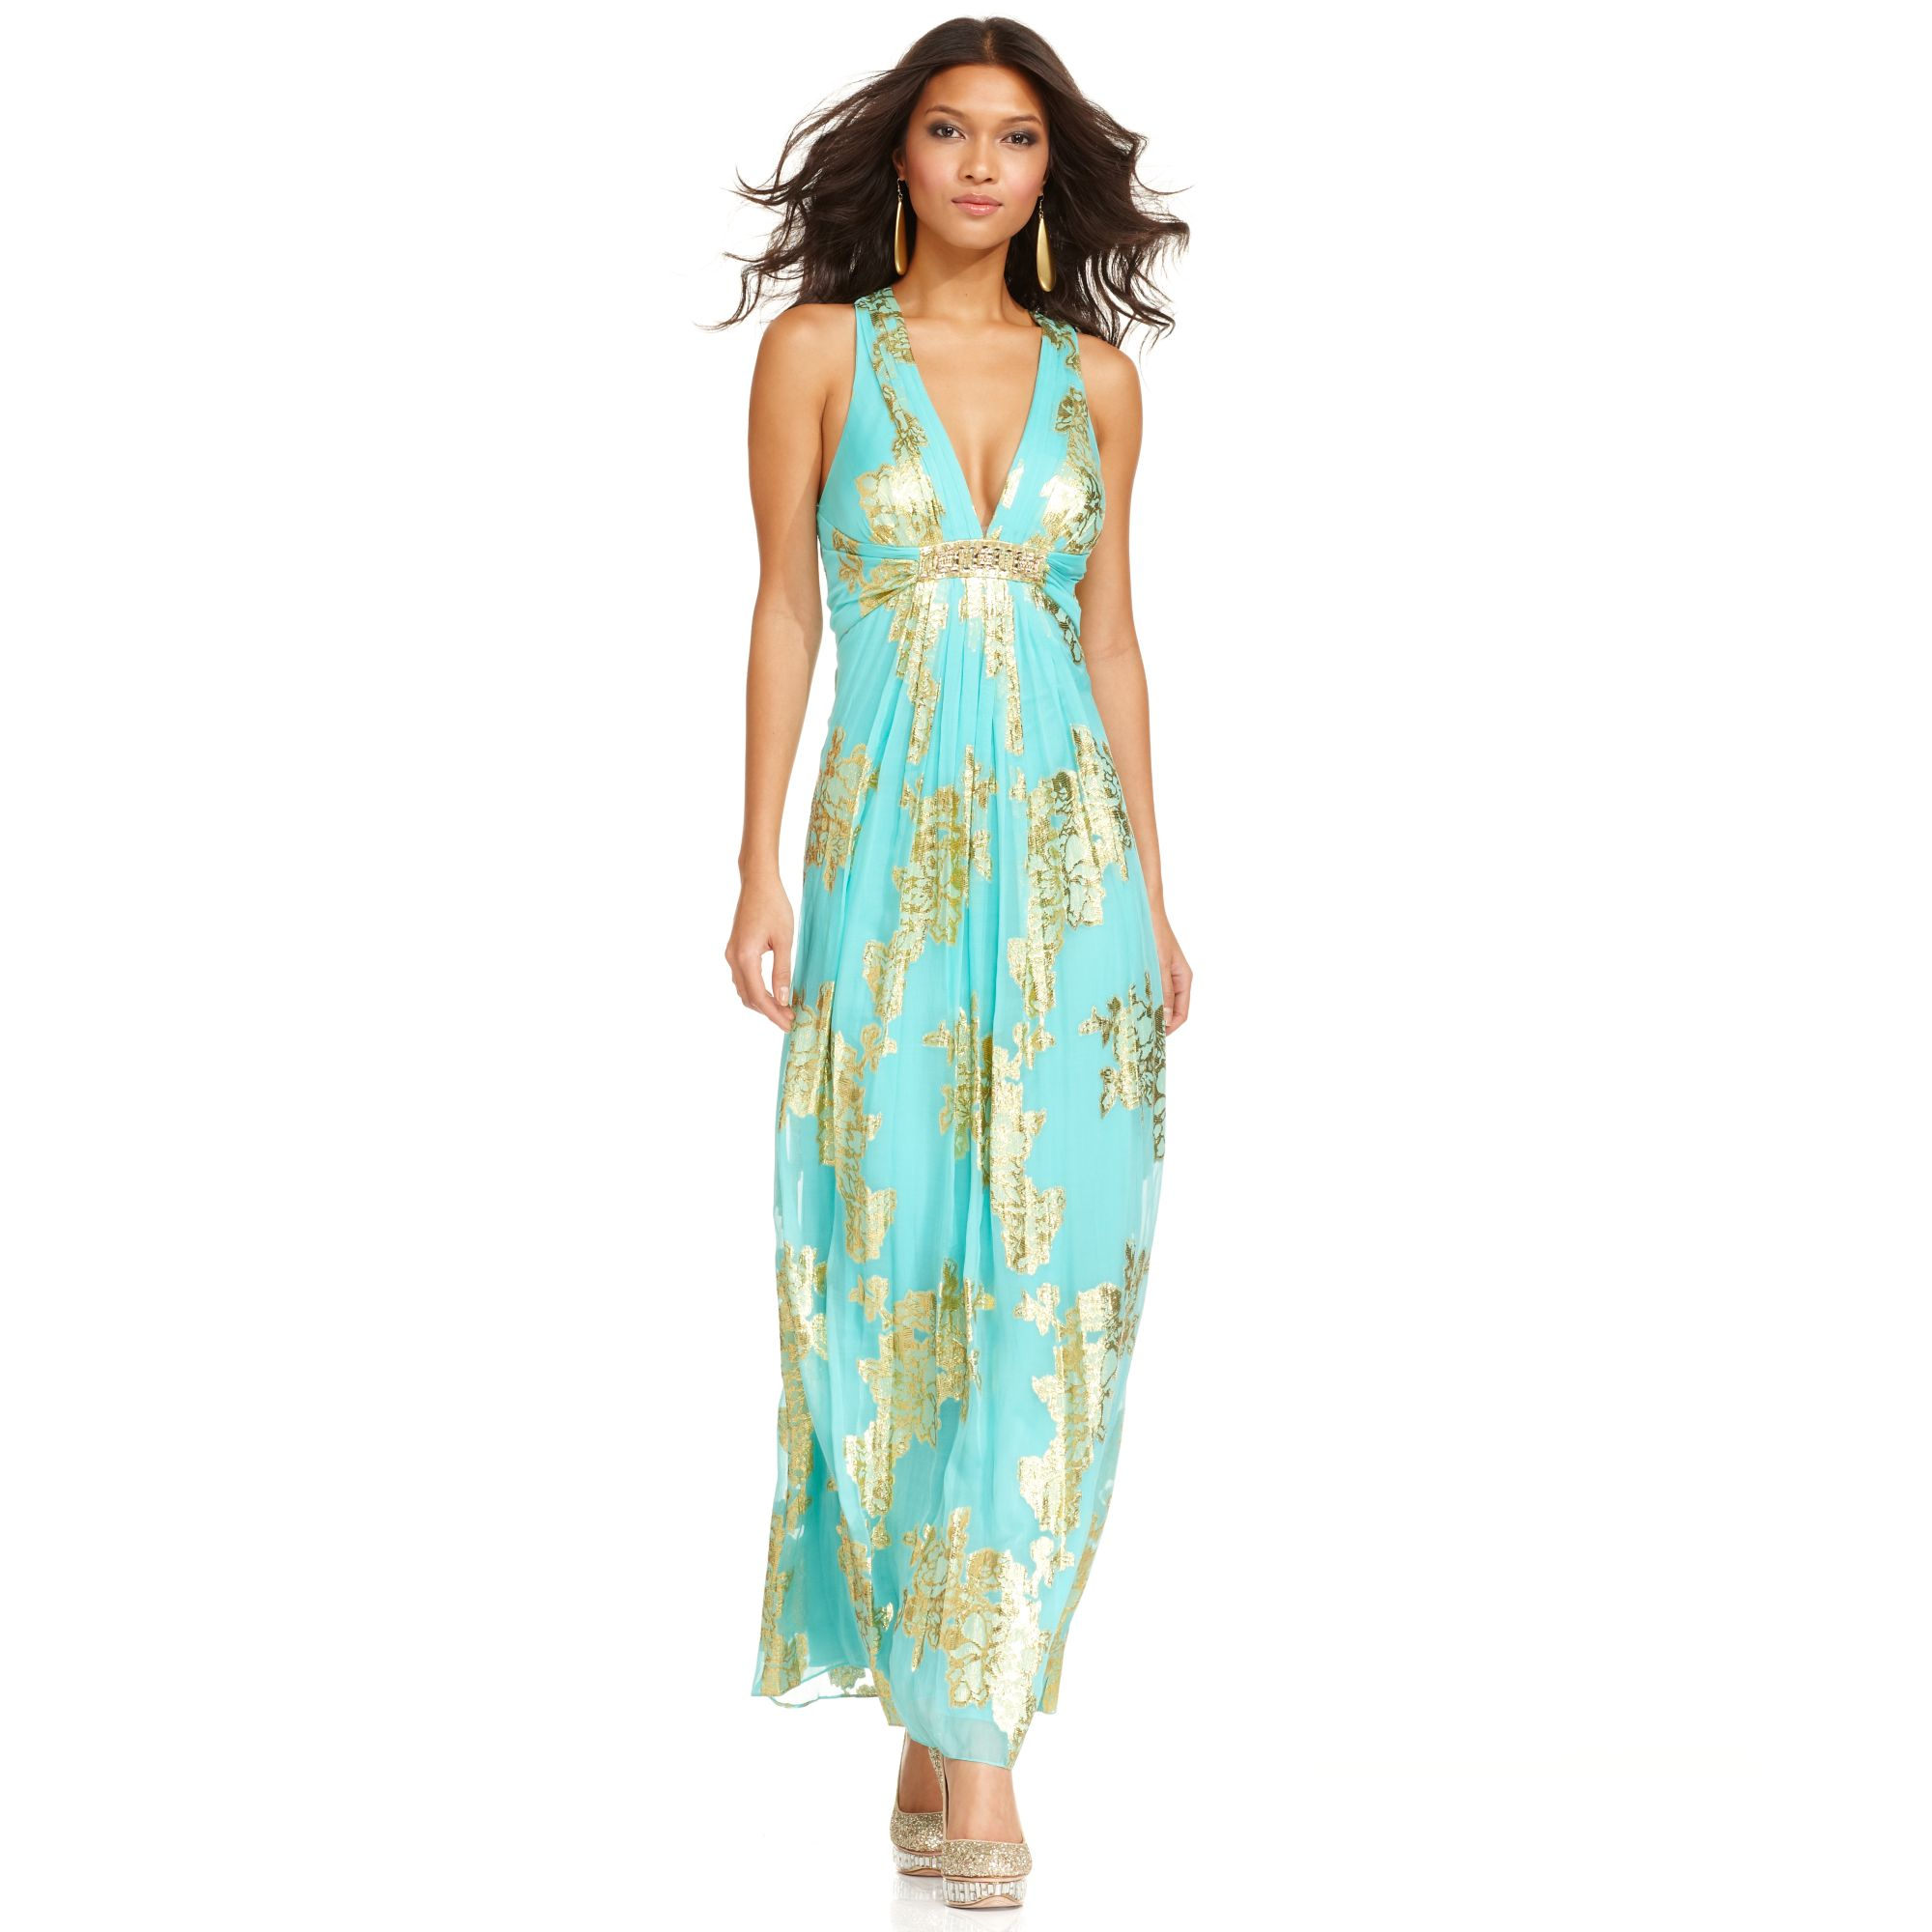 Lyst - Xscape Dress Sleeveless Metallic Floral Print Pleated Gown in ...